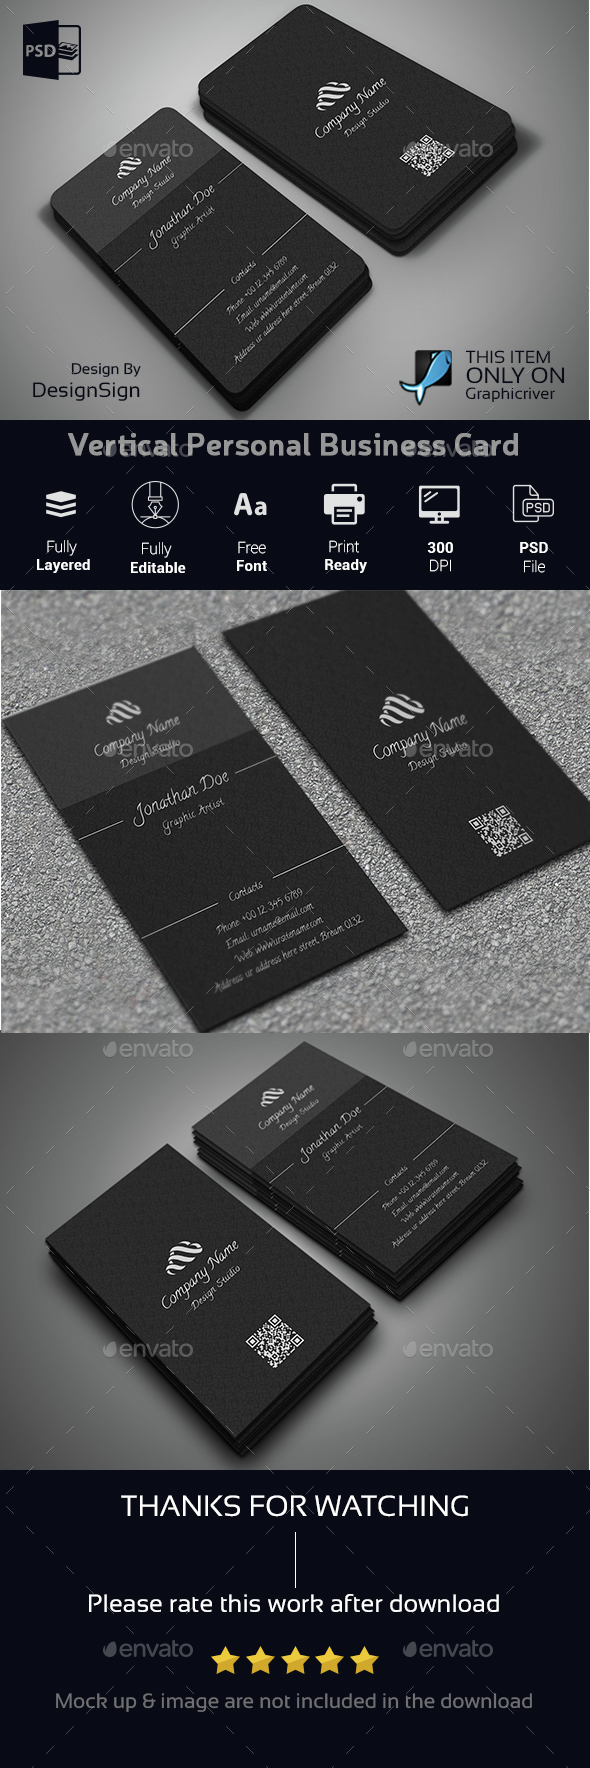 Vertical Personal Business Card - Corporate Business Cards